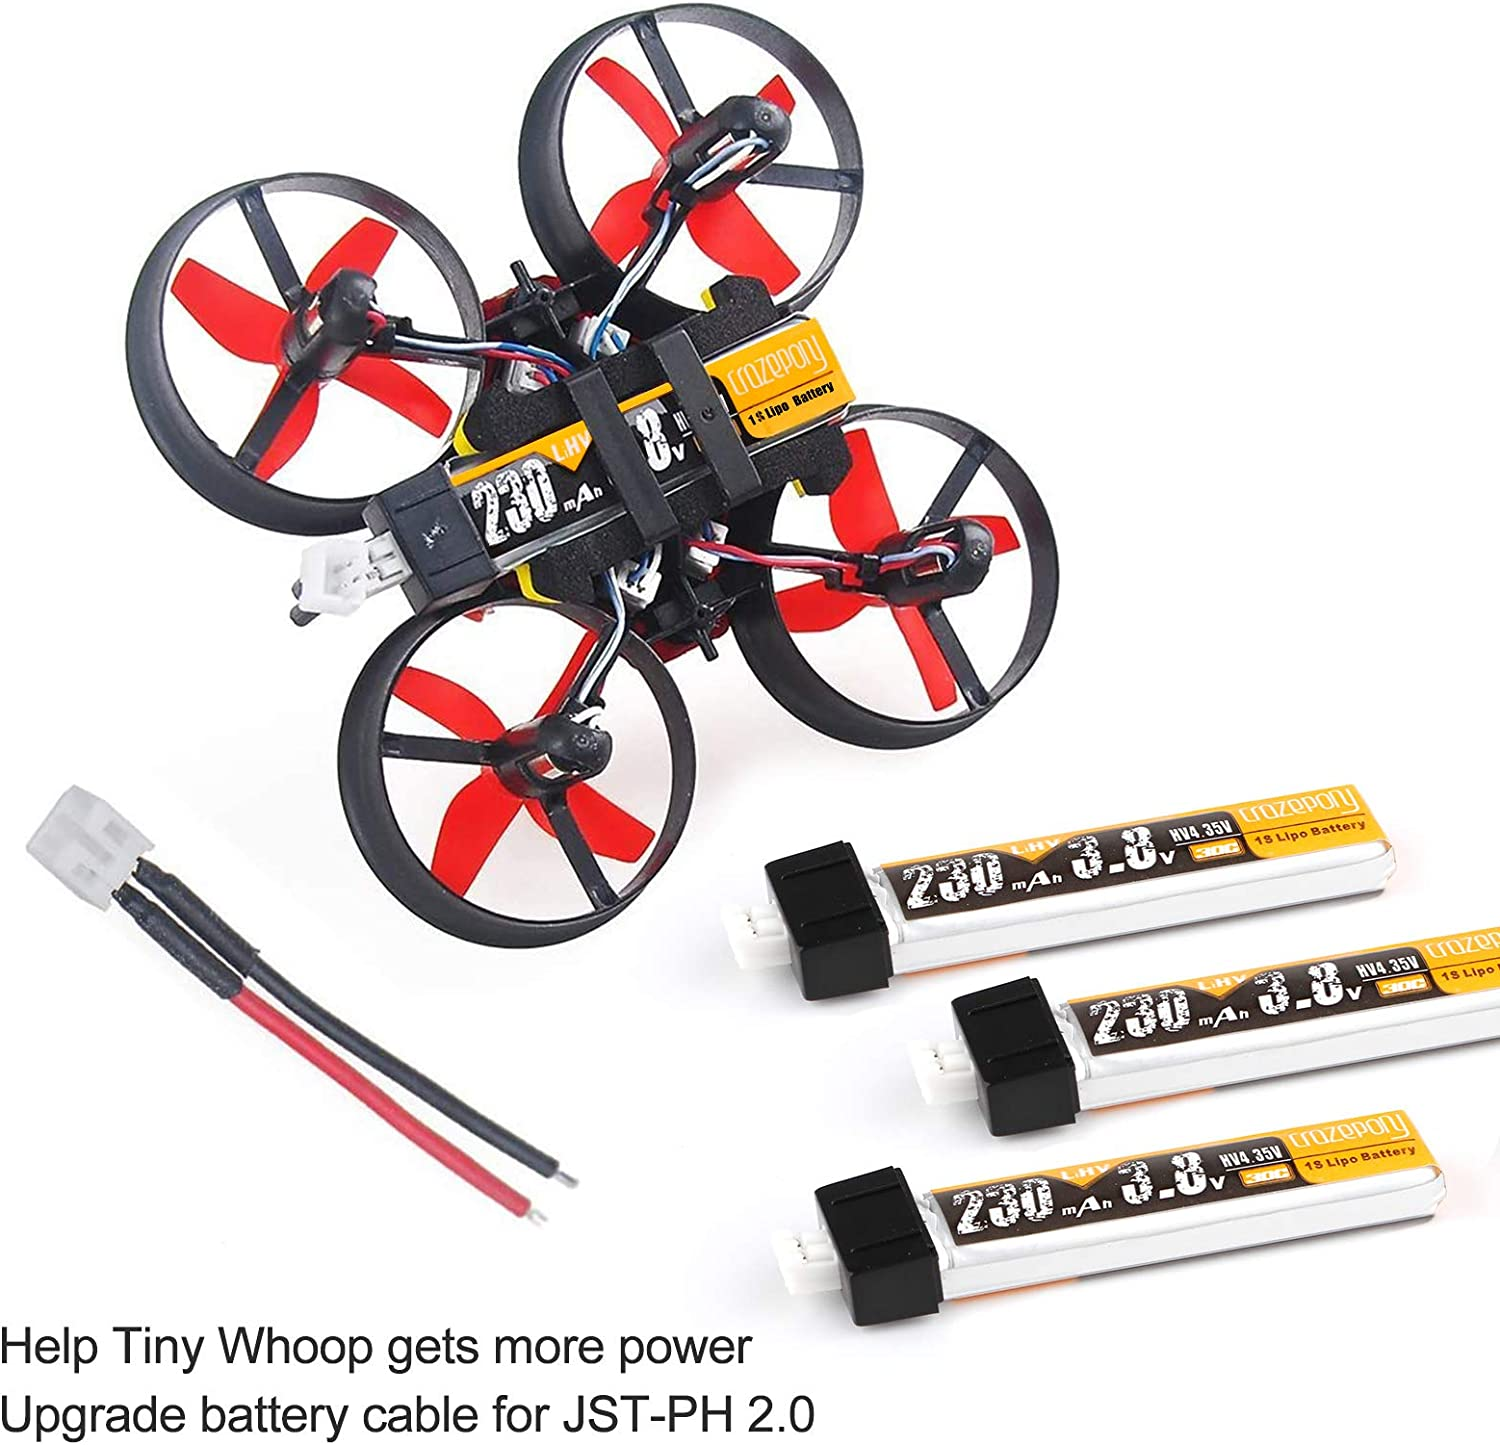 4pcs 230mAh HV 1S Lipo Battery 30C 3.8V for Tiny Whoop Blade Inductrix JST-PH 2.0 Connector